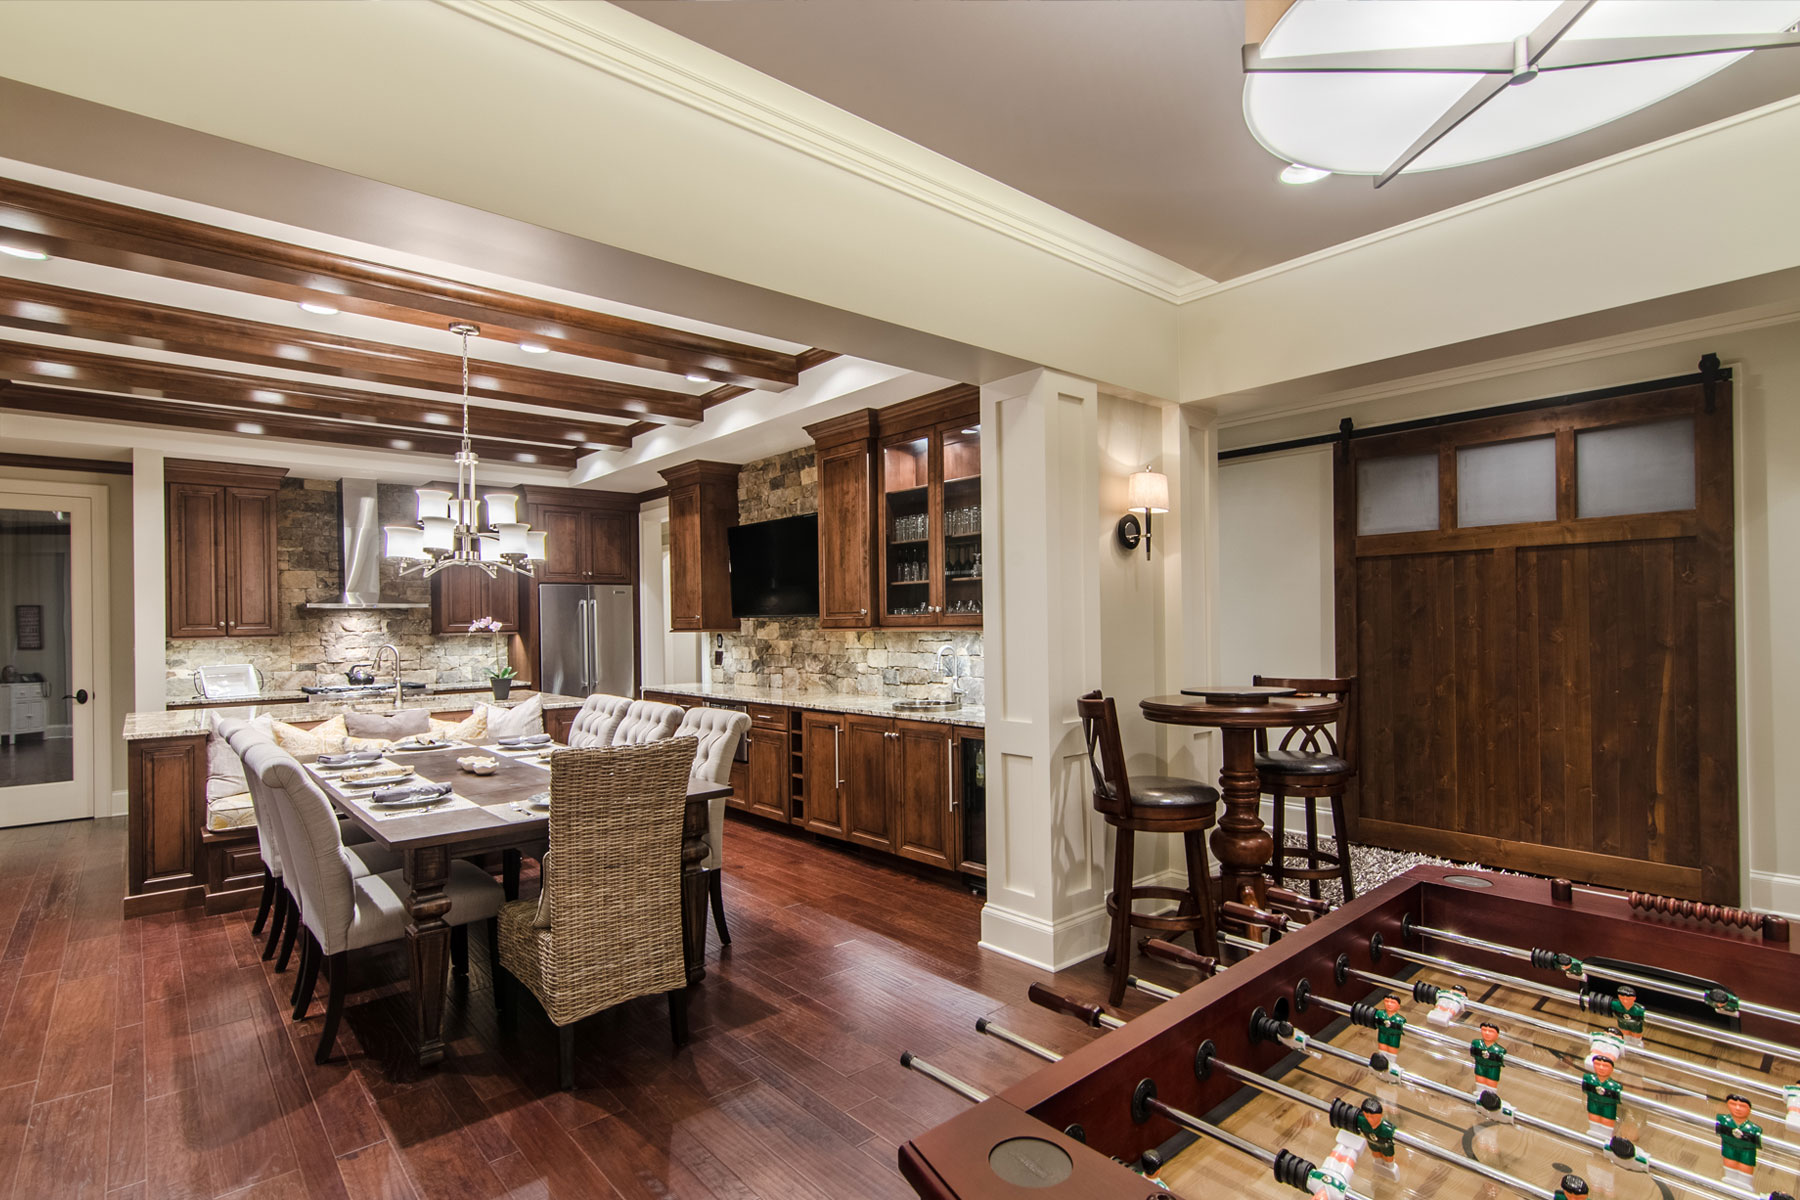 finished-basement-kitchen-large-dining-table